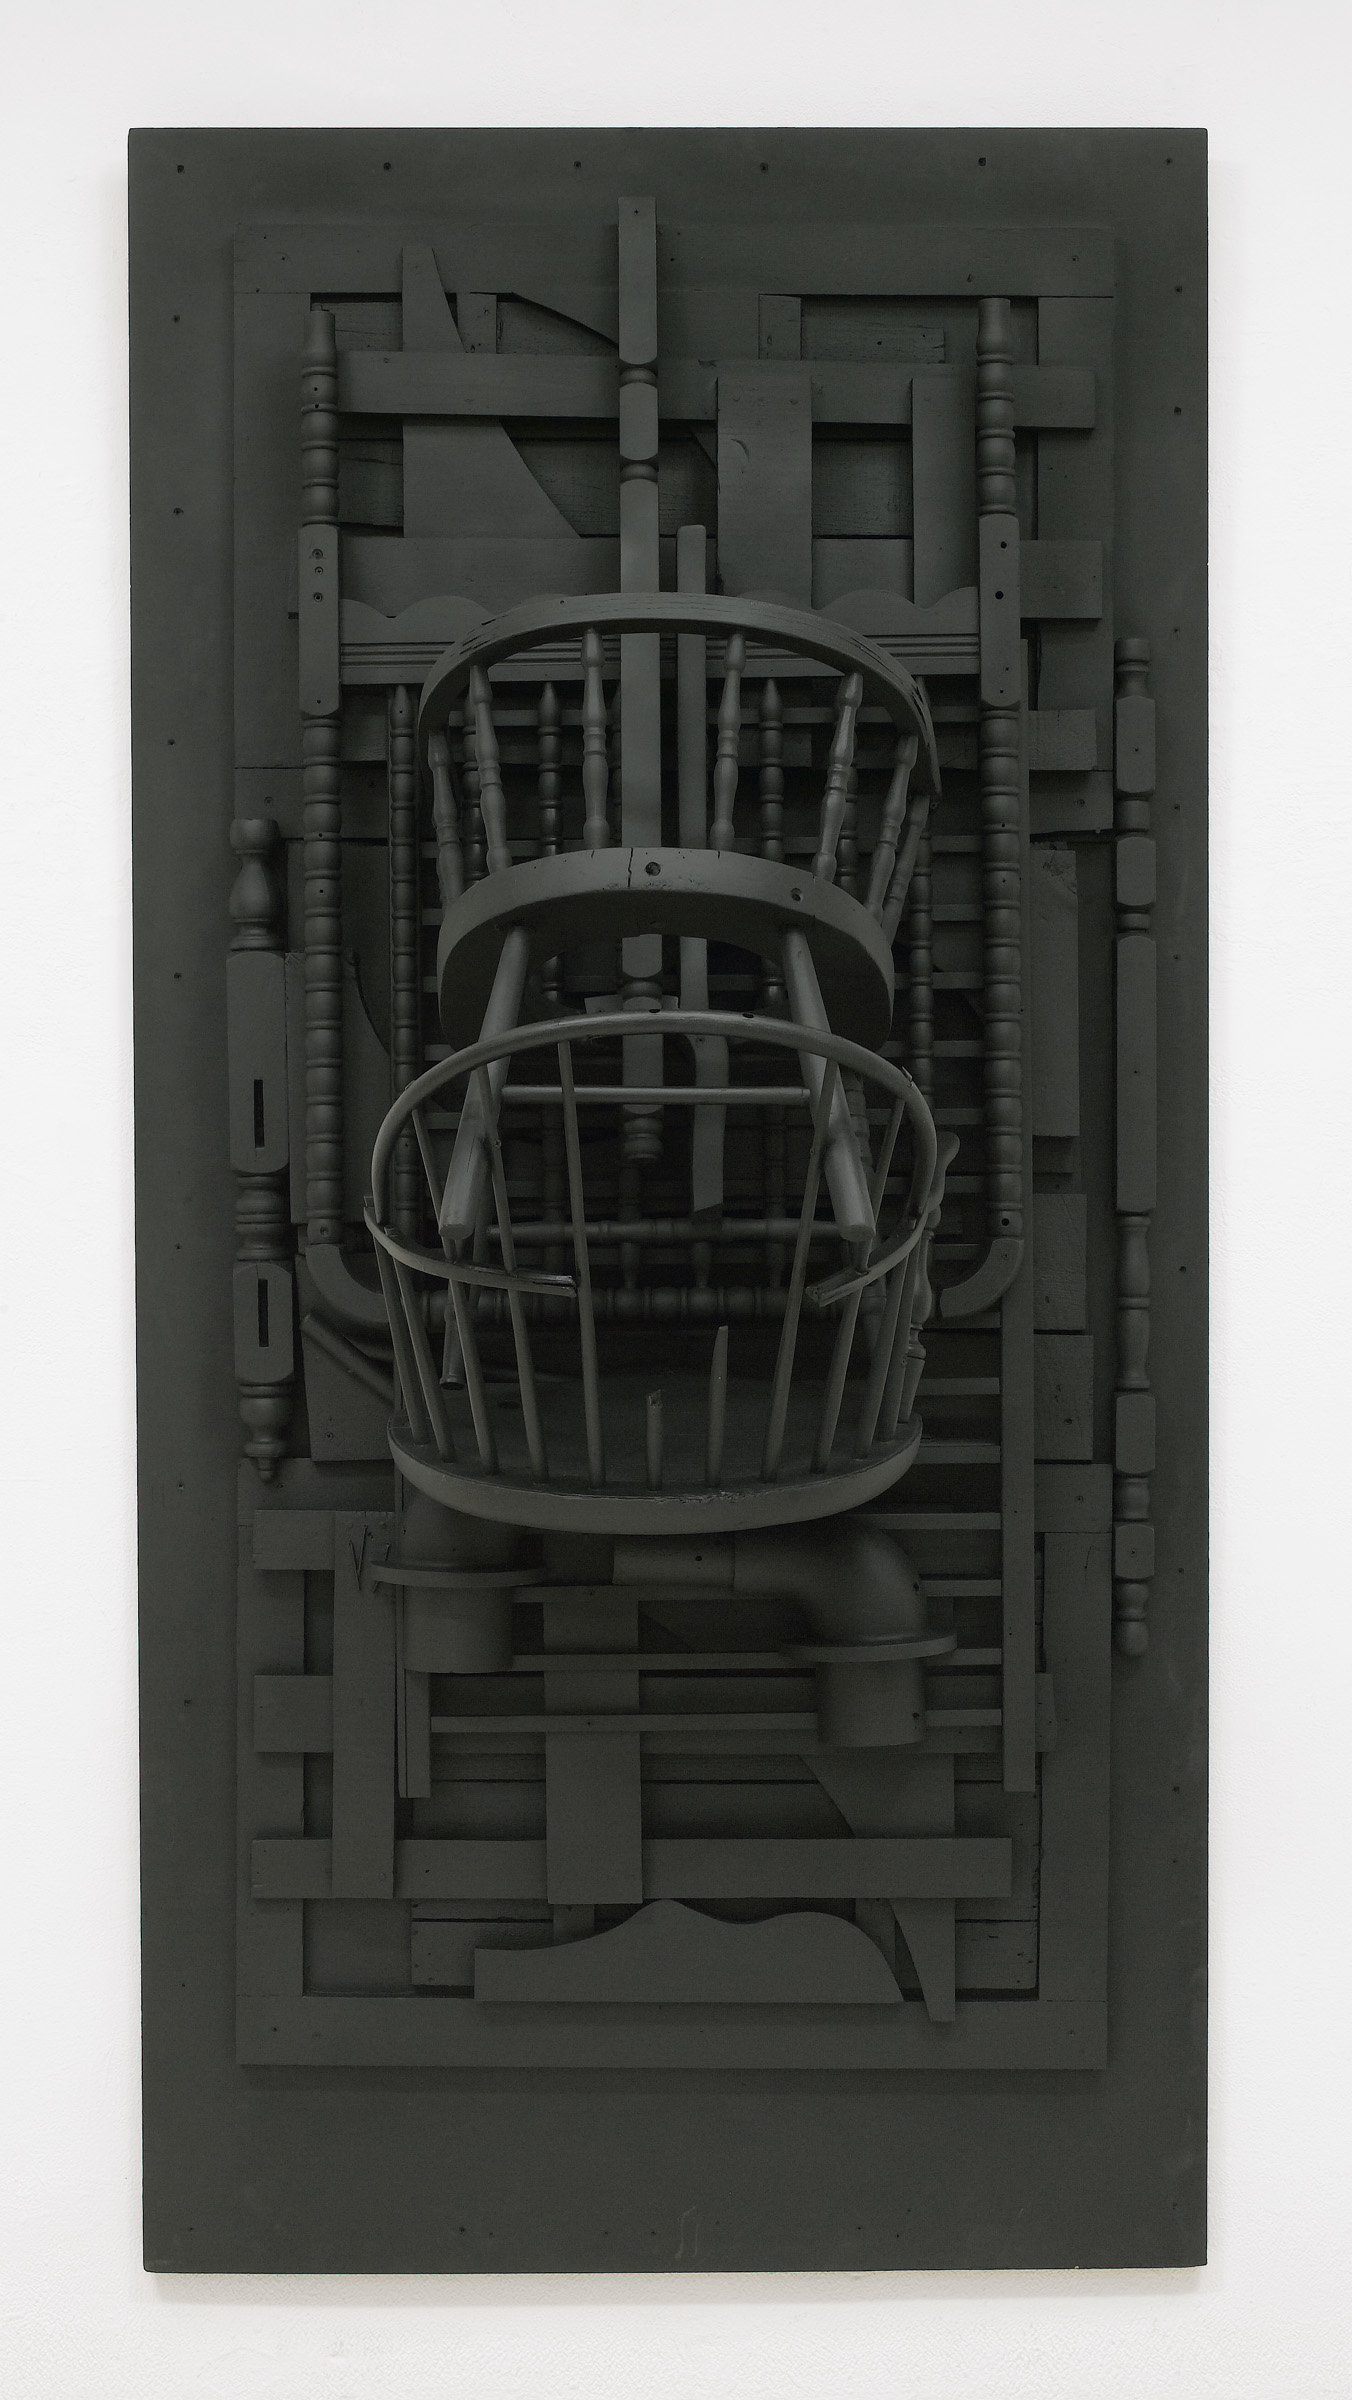 ", 1976. wood painted black, 96"" x 48"" x 30-1/4"" (243.8 cm x 121.9 cm x 76.8 cm)."